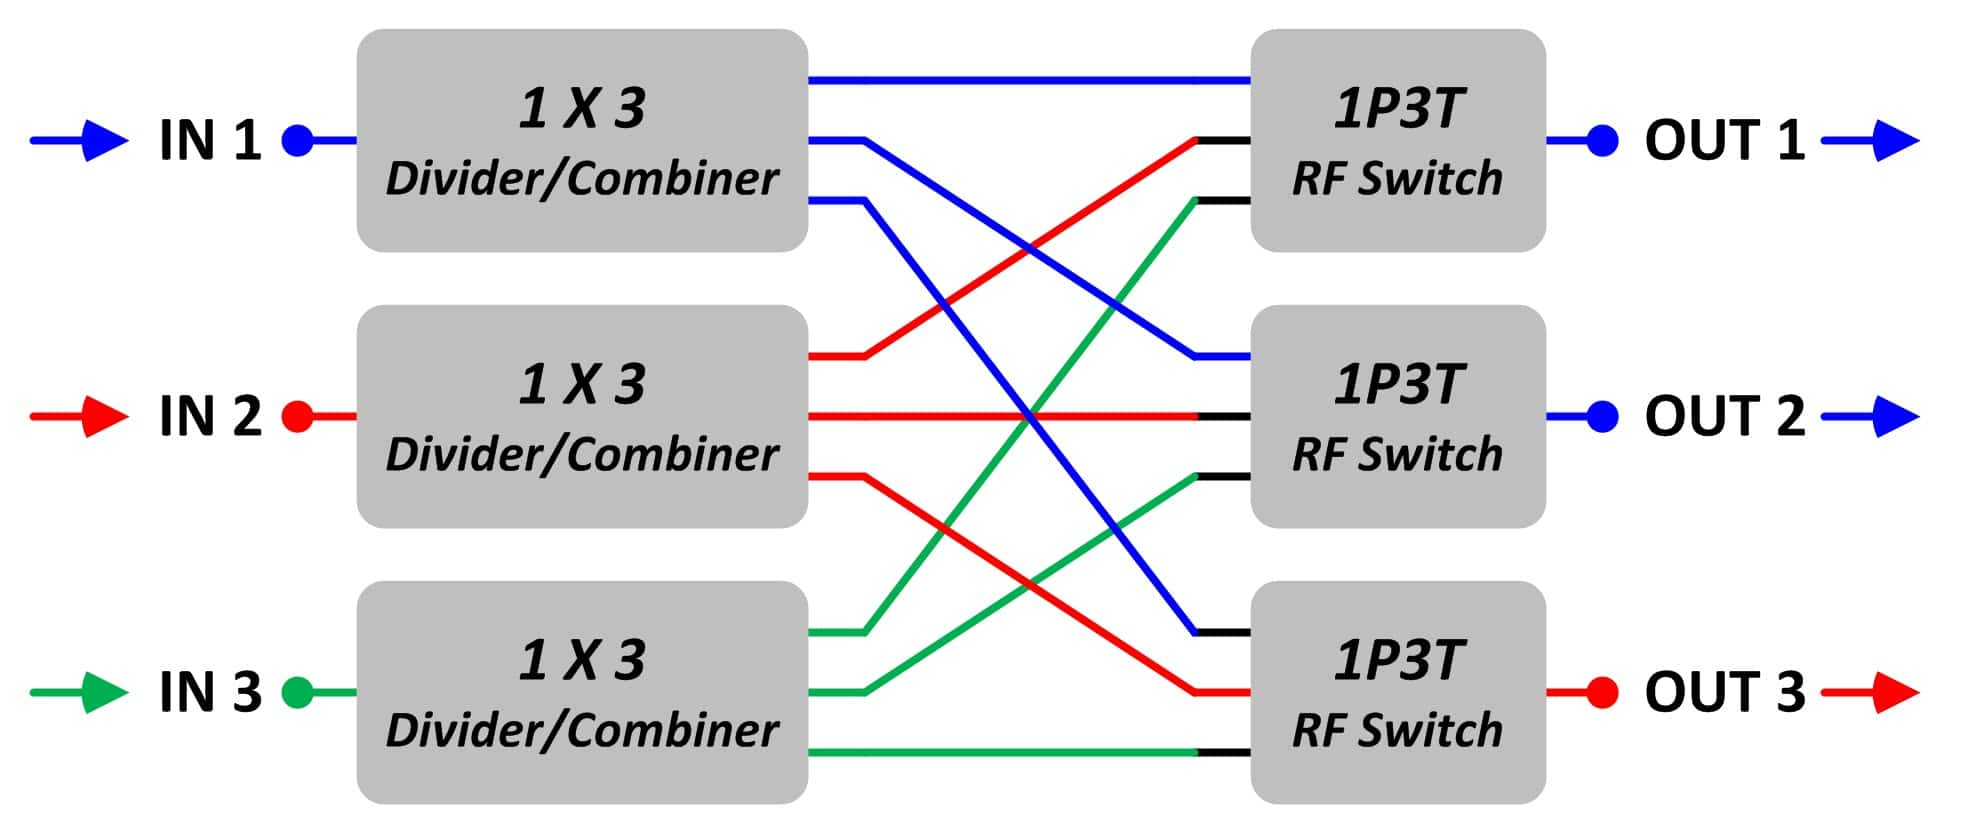 Non Blocking Matrix Switches Jfw Industries Make A Block Diagram This Shows Another Possible Setting Of 3 X Switch There Are Three Input Signals Blue Red Green